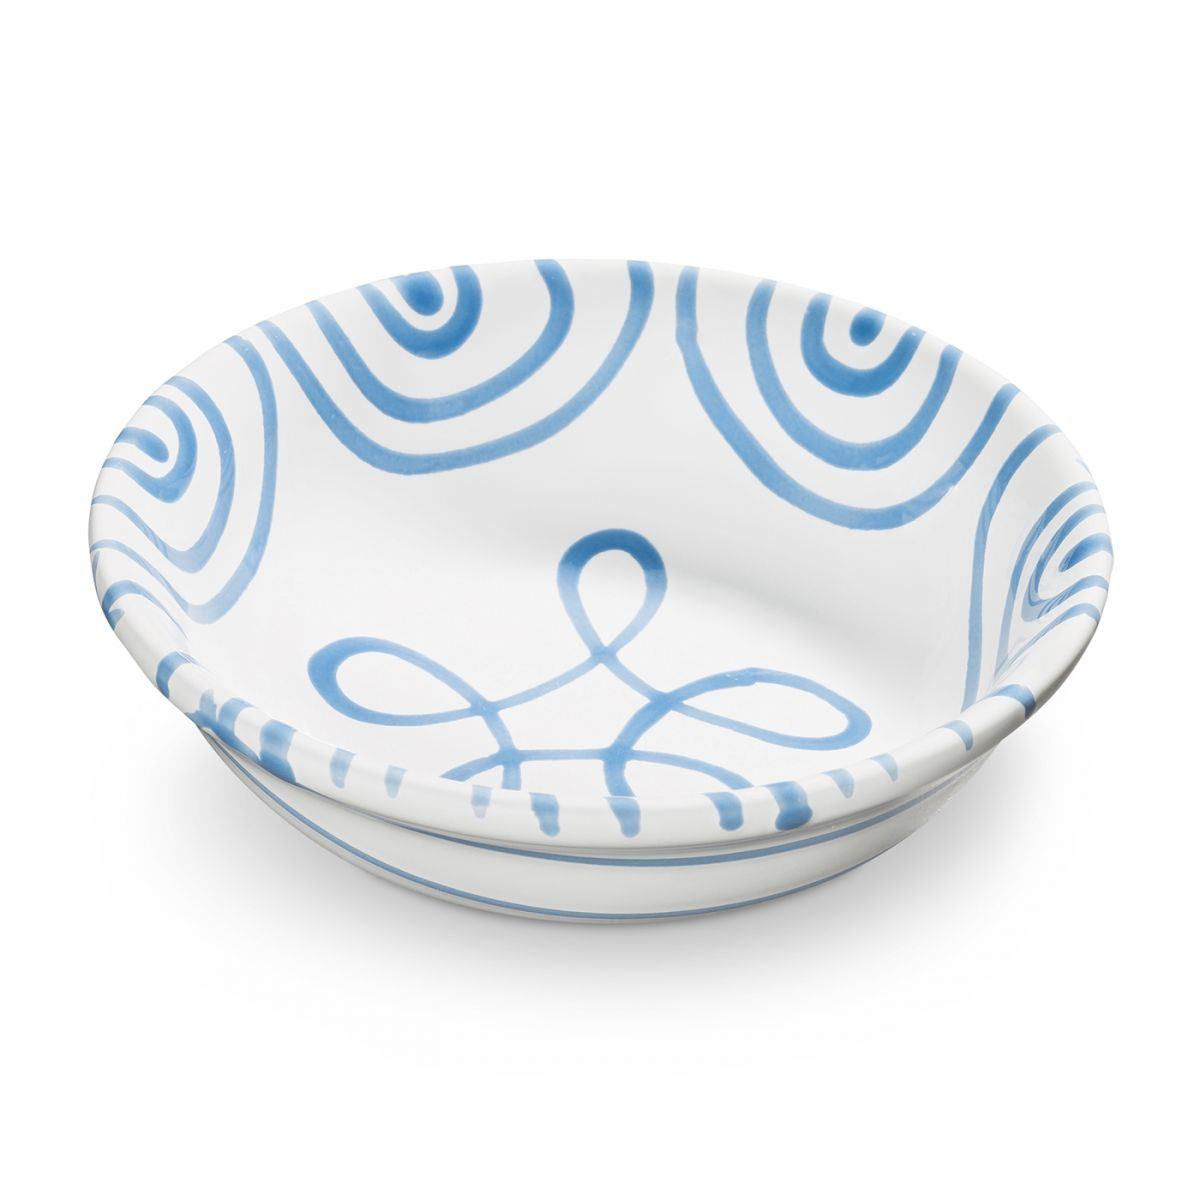 Dizzy Blue Cereal/Compote Dish 5.5